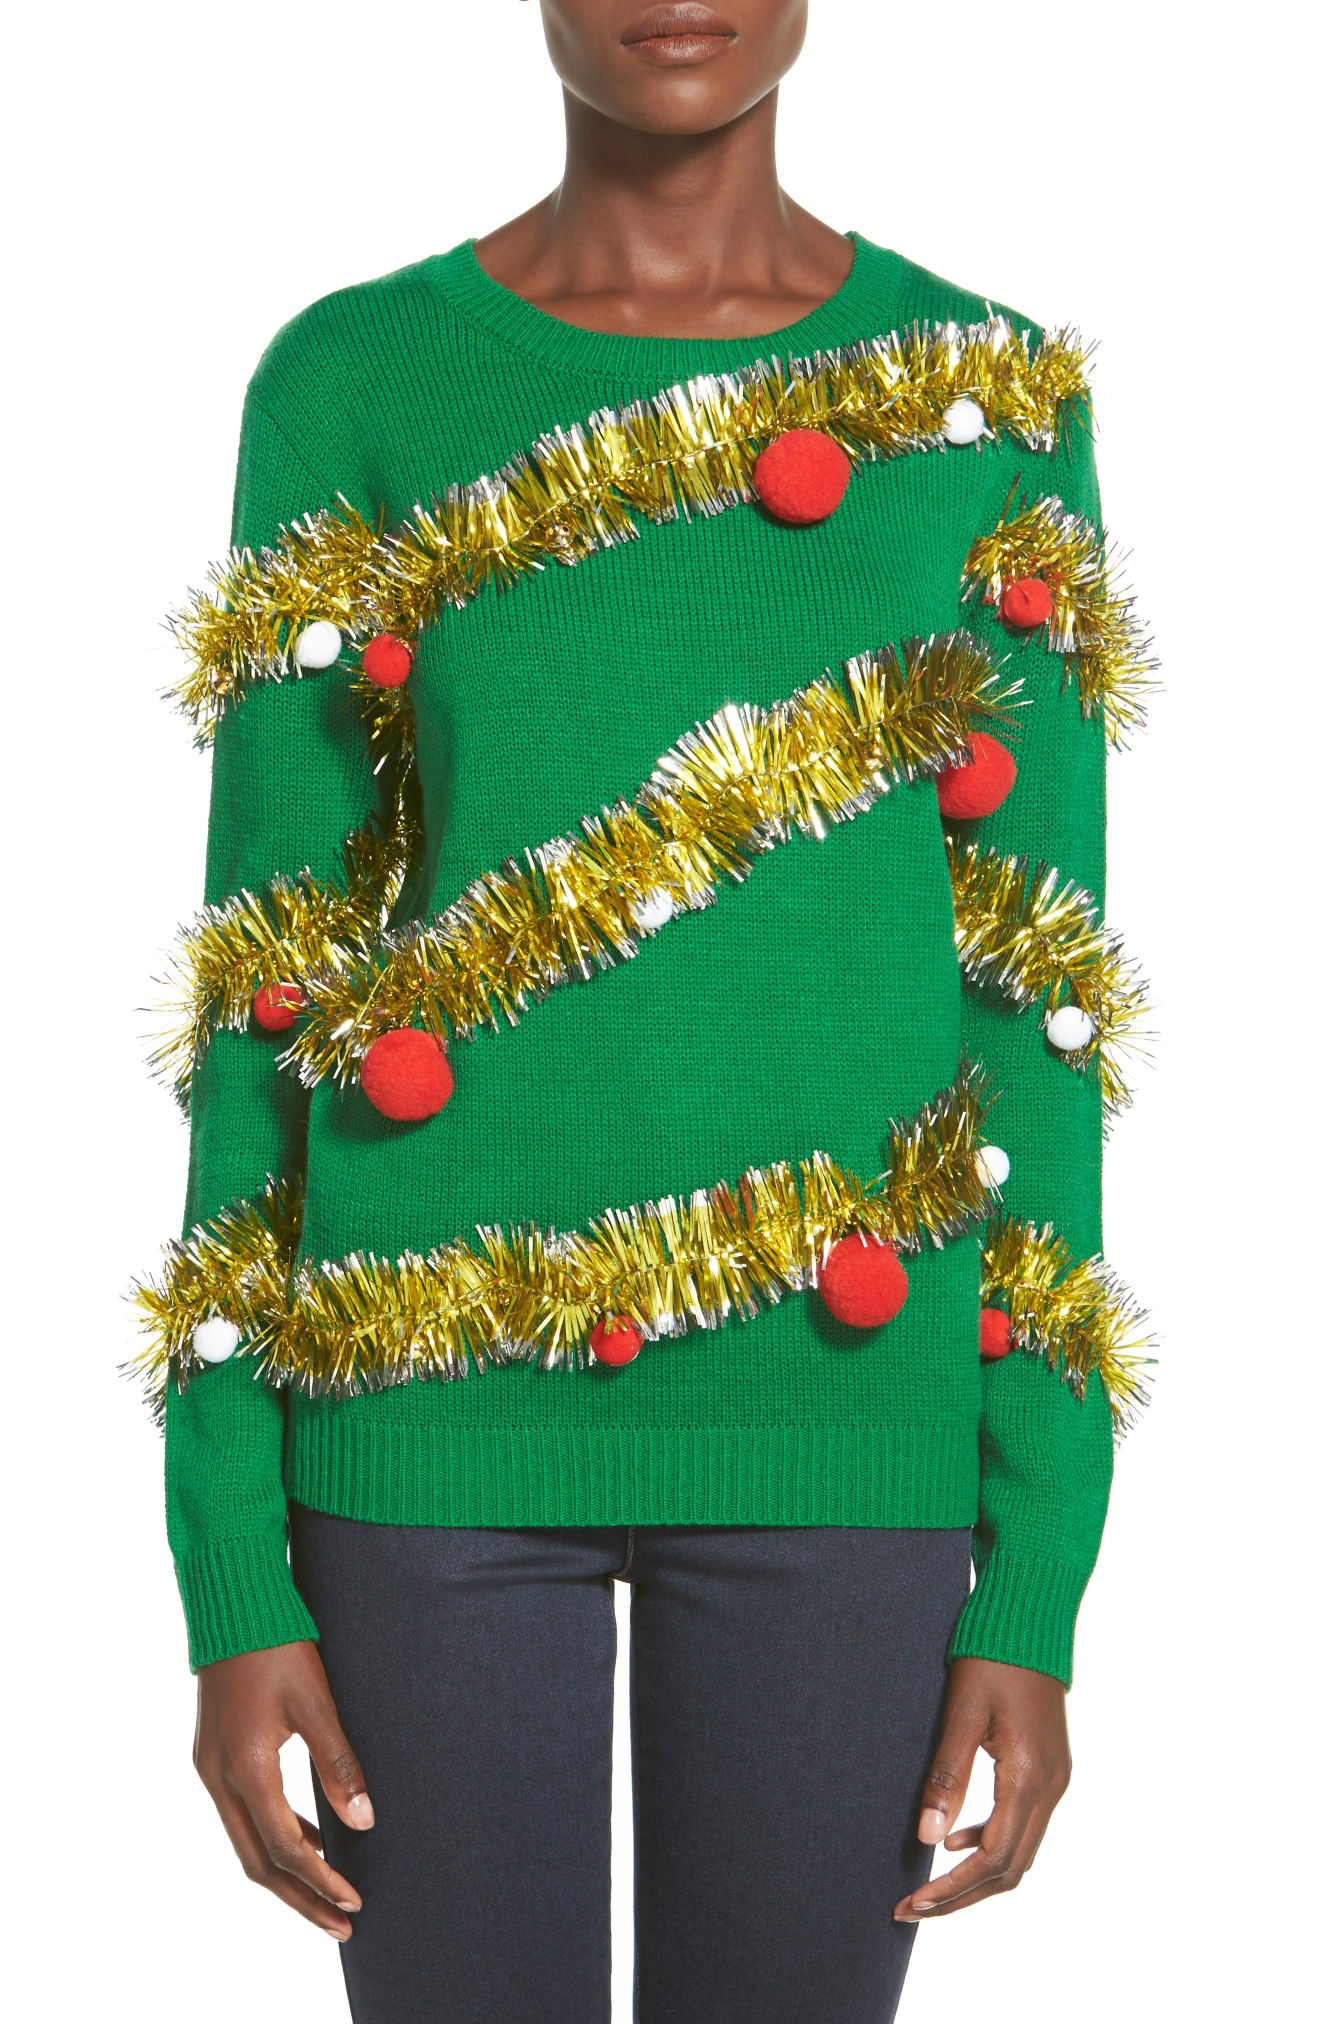 Ten Sixty Sherman Tinsel Ball Christmas Sweater, $42 (Photo: Nordstrom)